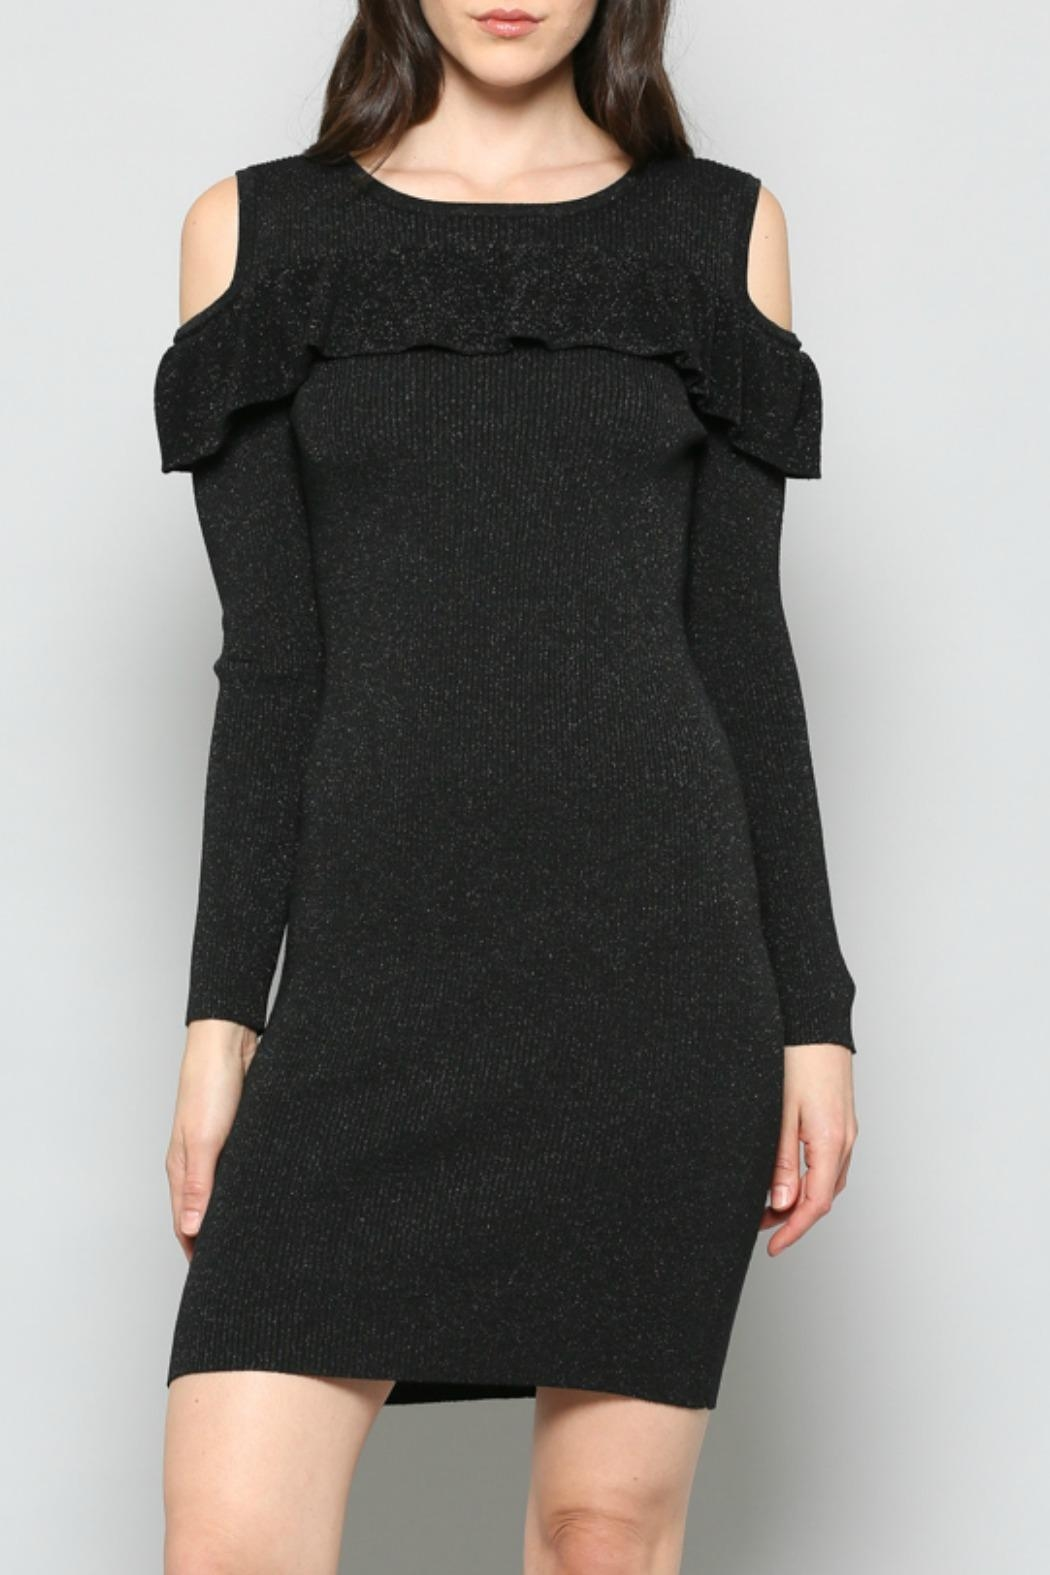 FATE by LFD Cold-Shoulder Rib-Knit Dress - Front Full Image